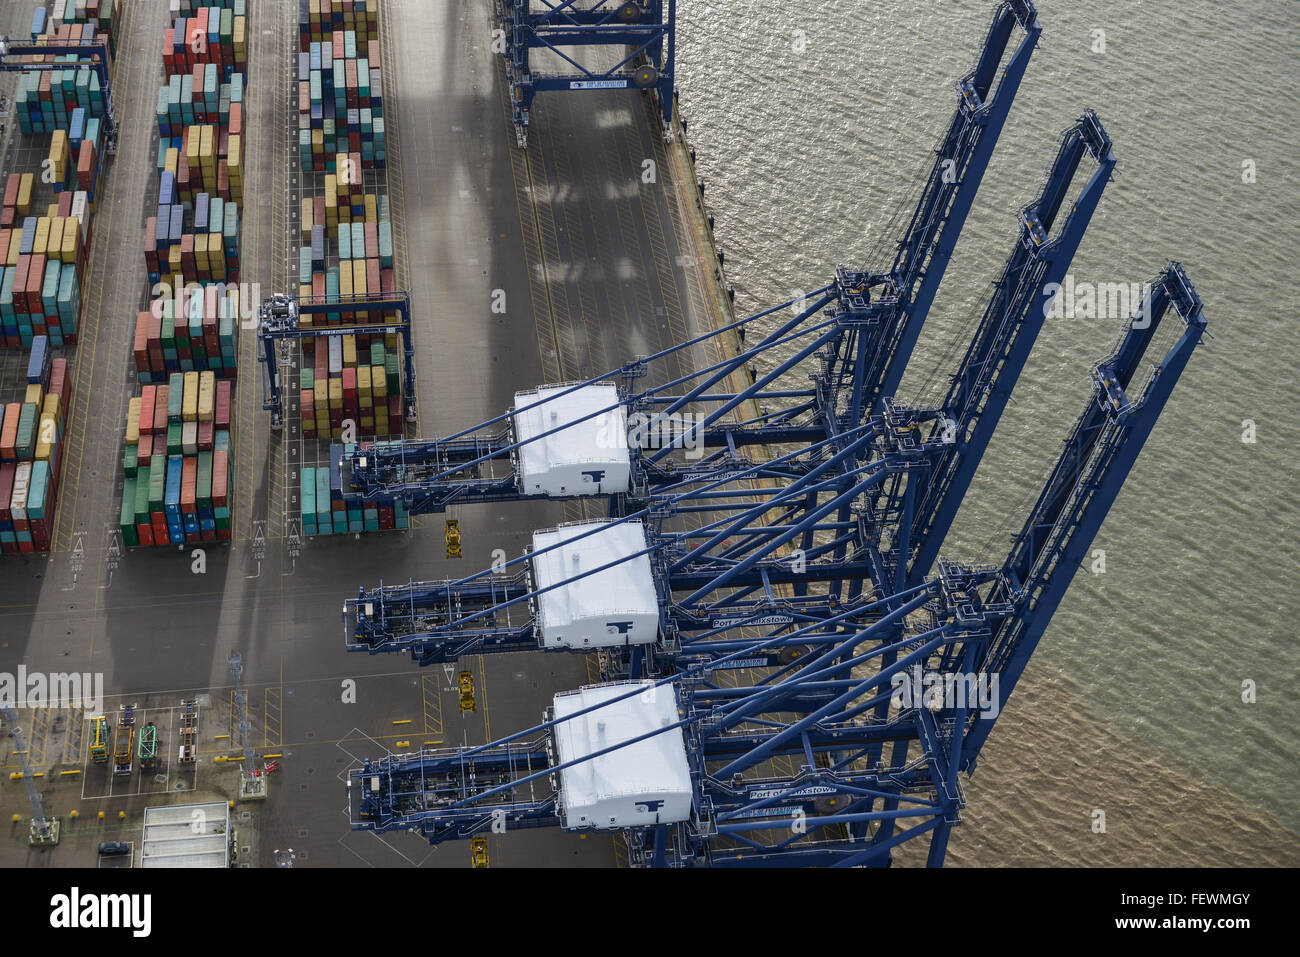 A dramatic aerial view of the dockside cranes at Felixstowe Port - Stock Image